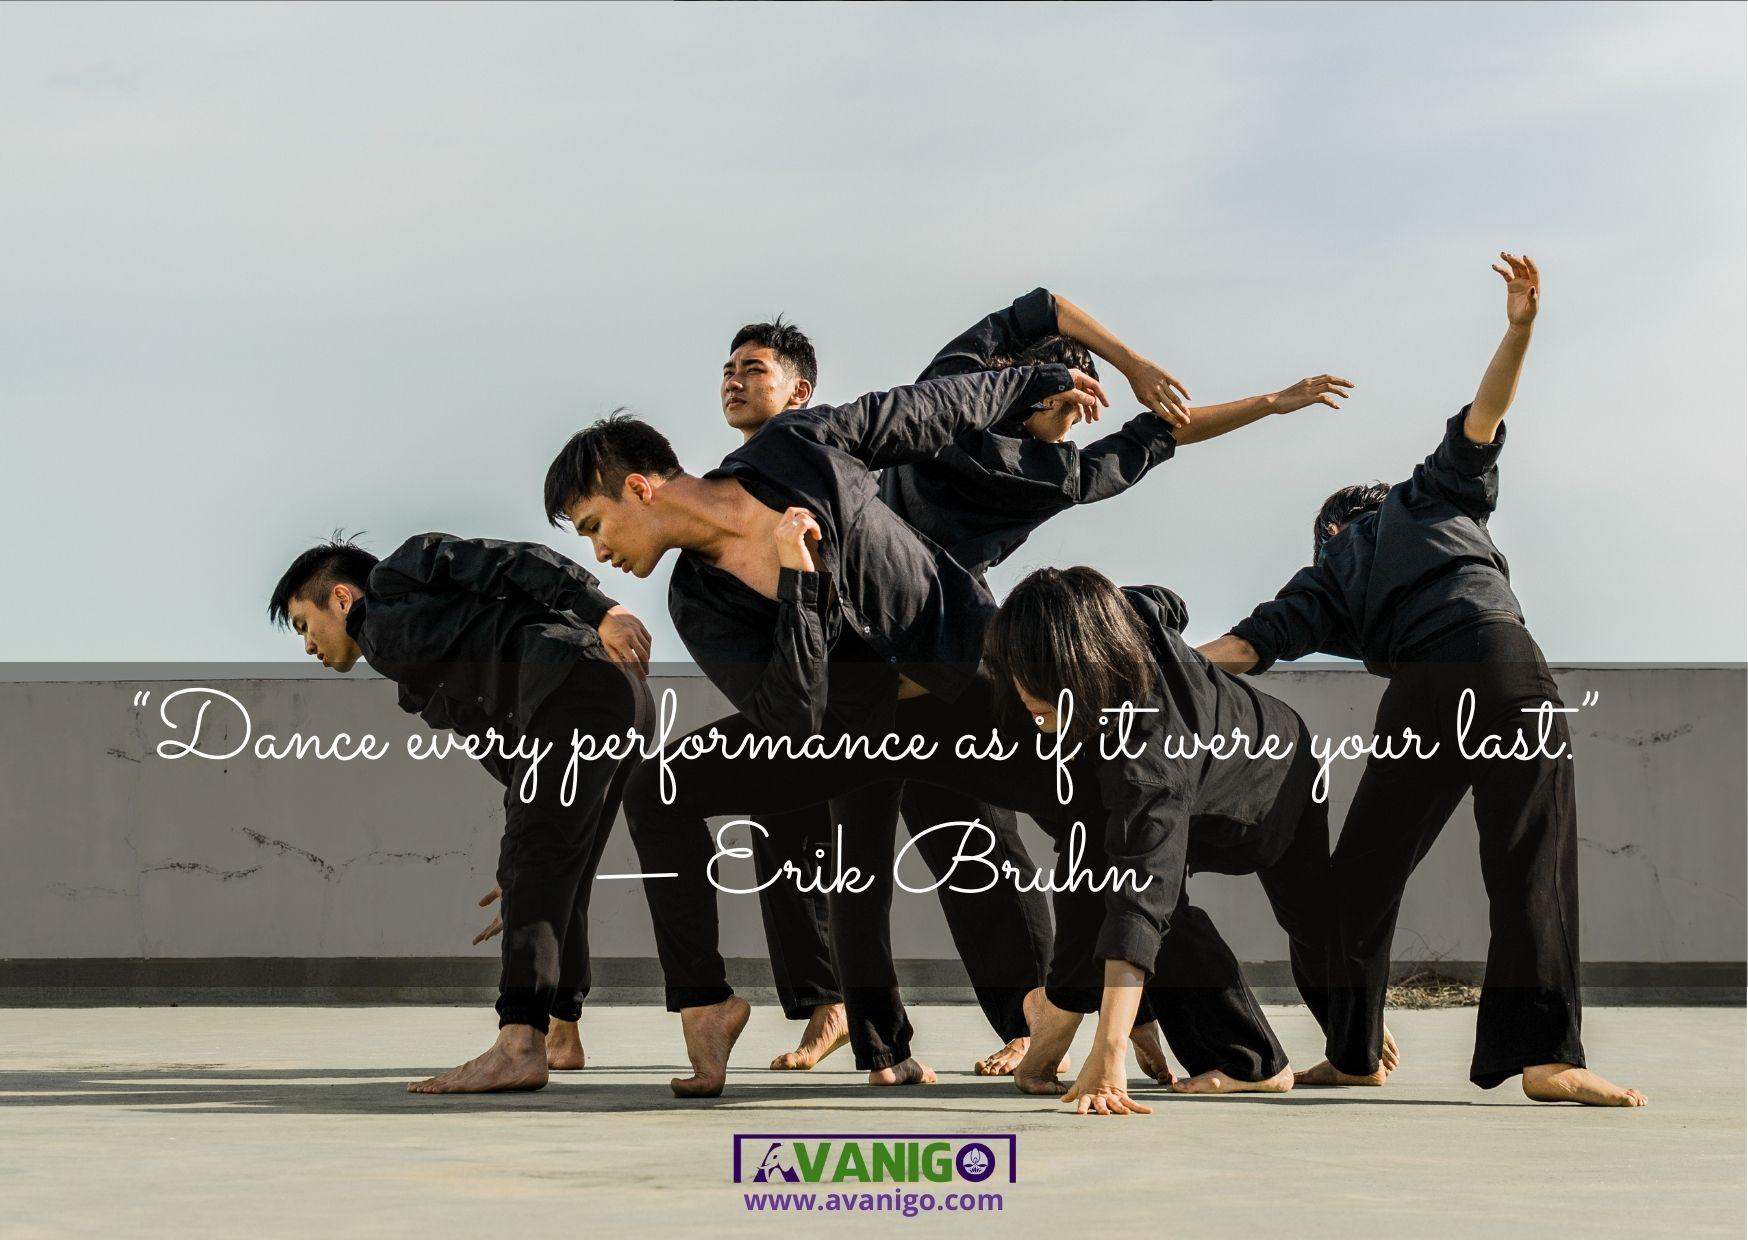 Dance every performance as if it were your last.